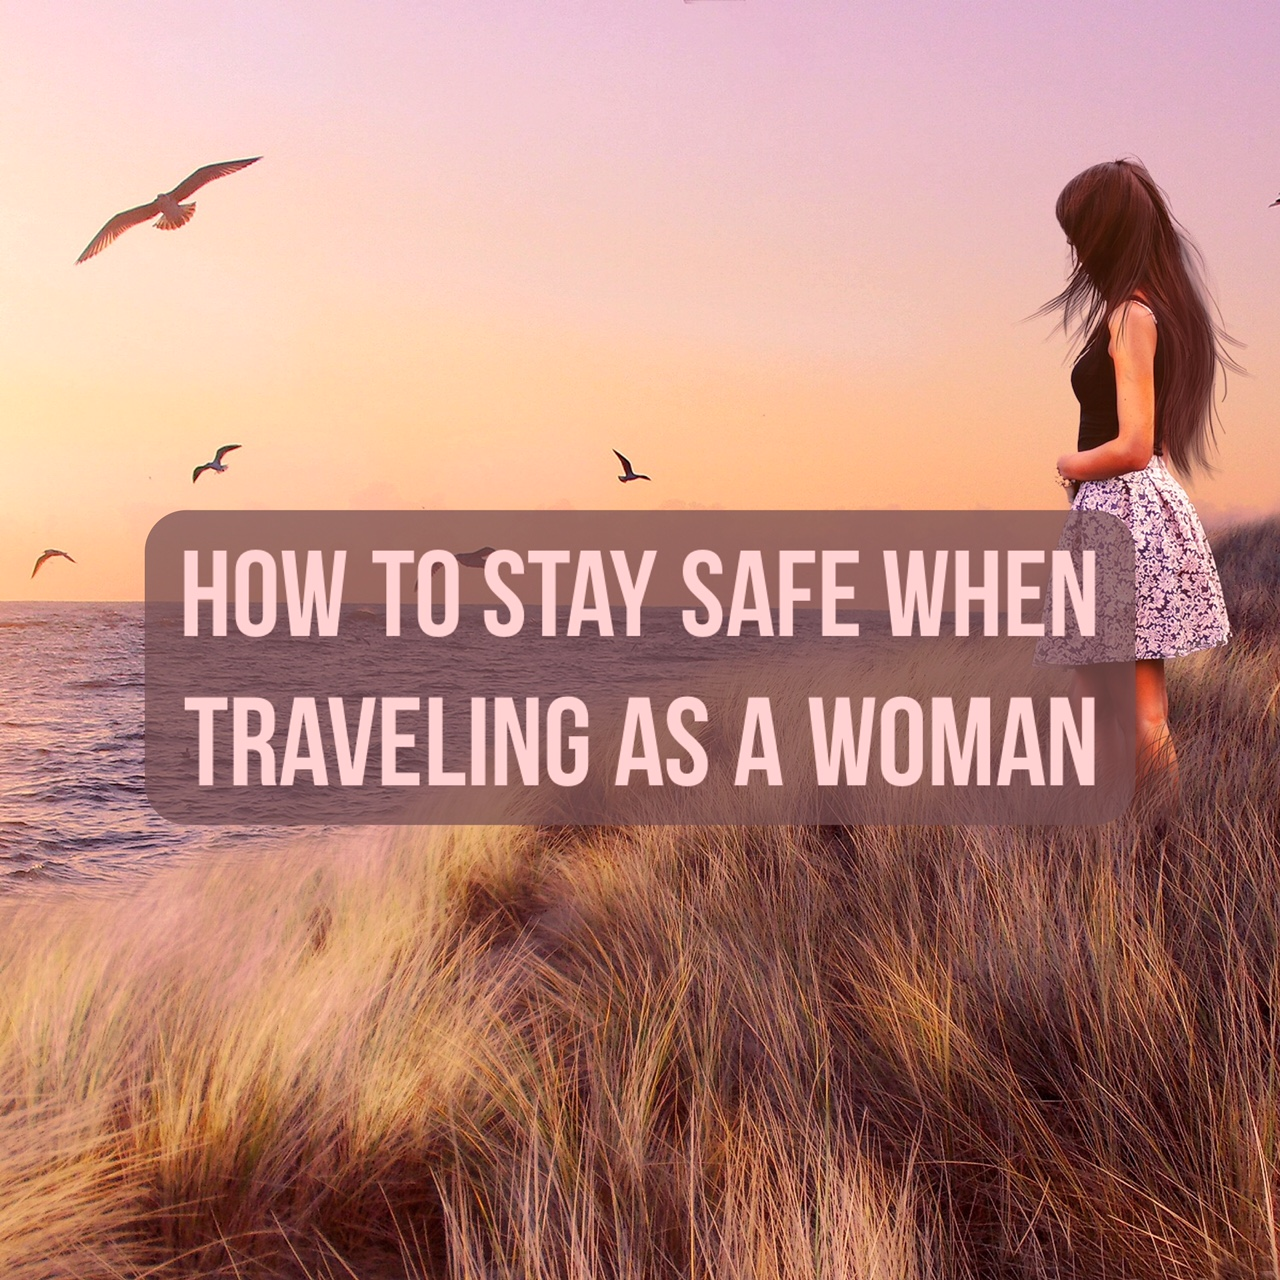 Stay Safe When Traveling Turkey: How To Stay Safe When Traveling As A Woman